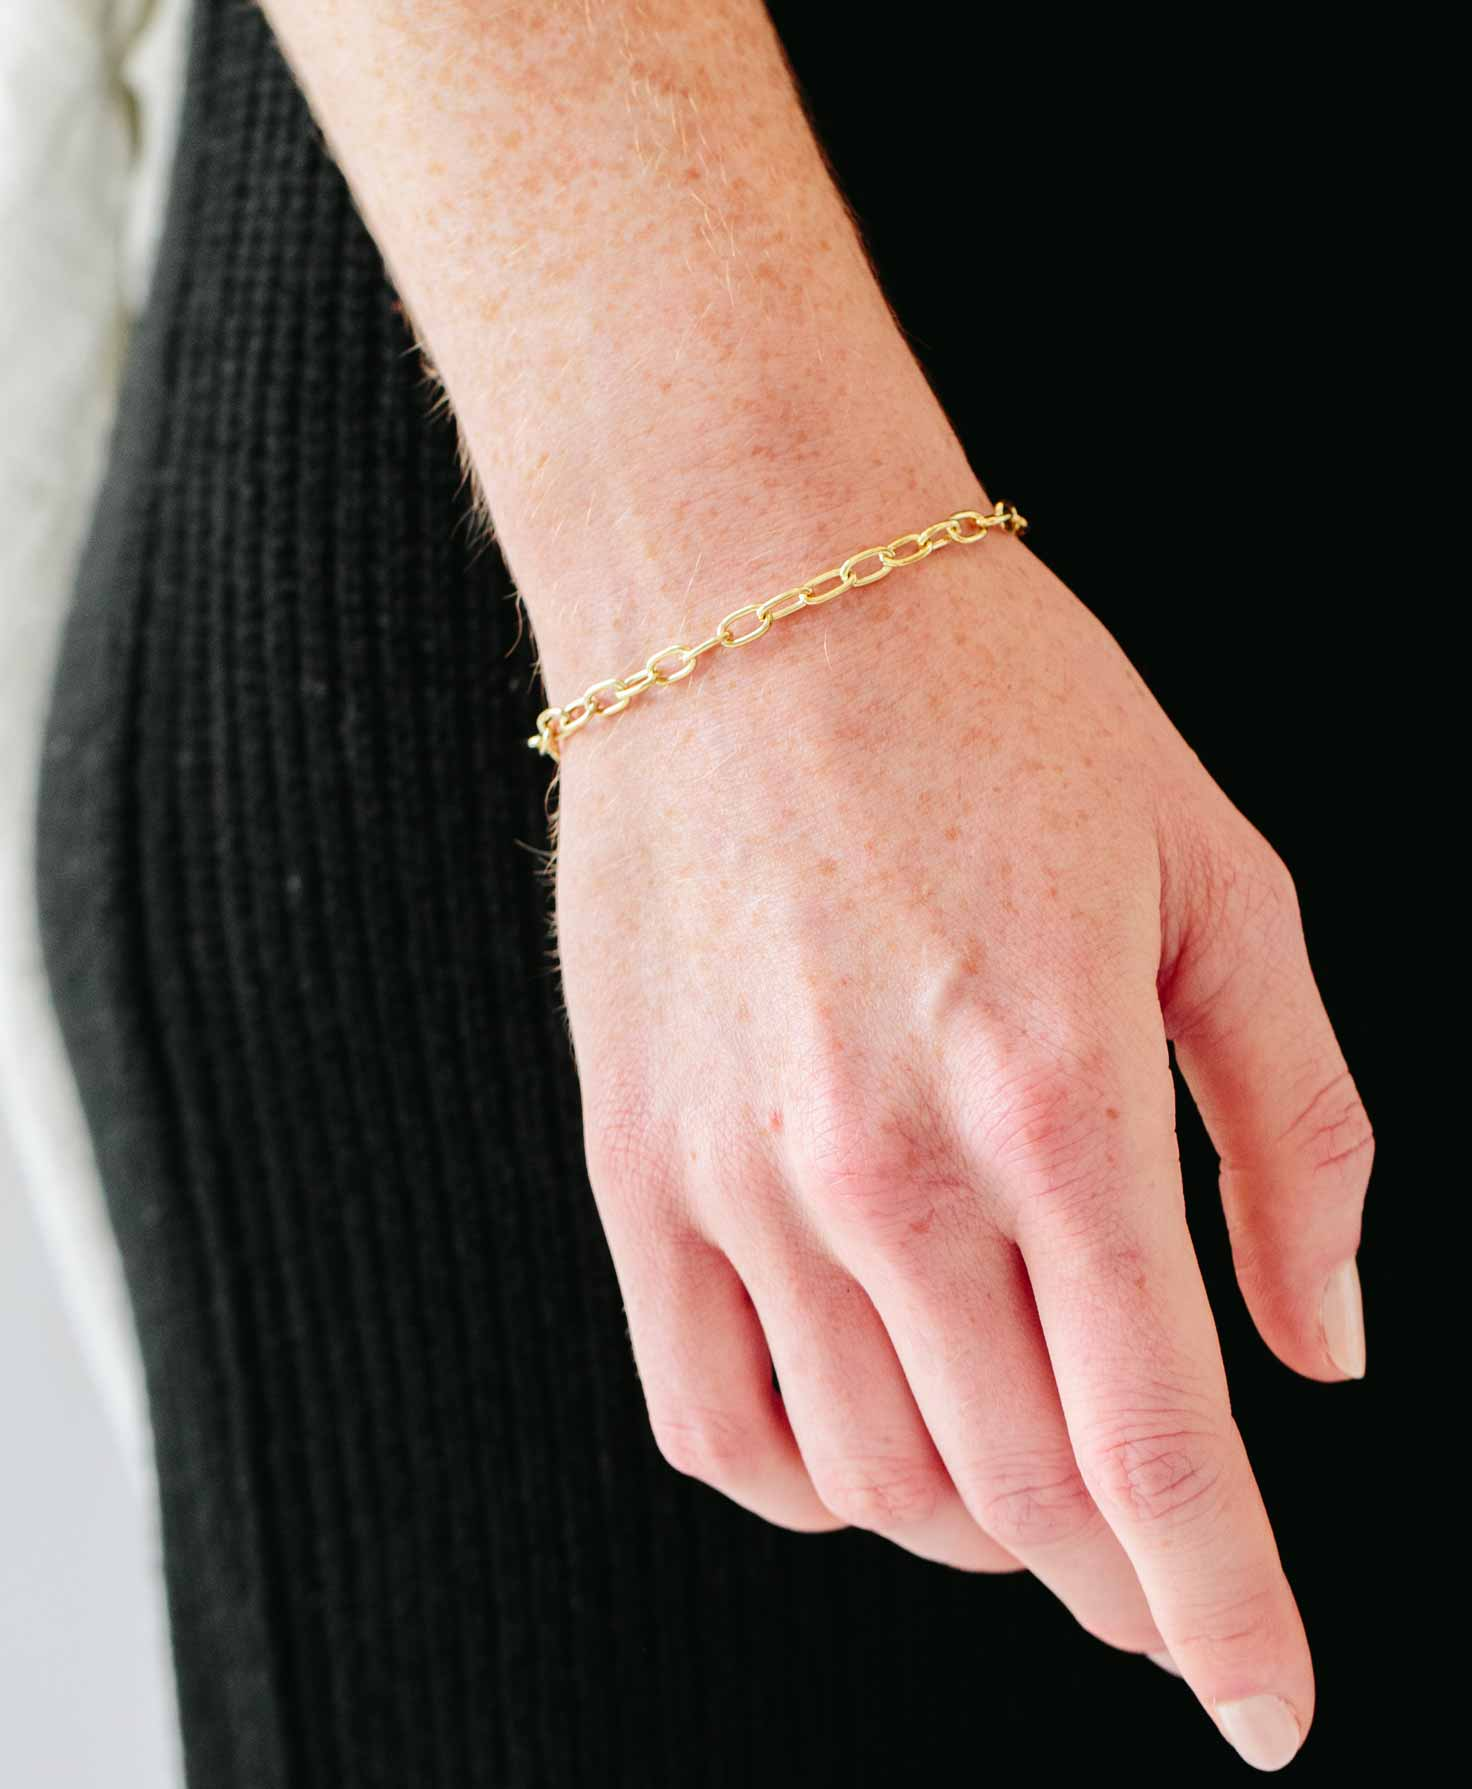 A model's arm is shown wearing only the Infinity Bracelet for a simple, luxe look.